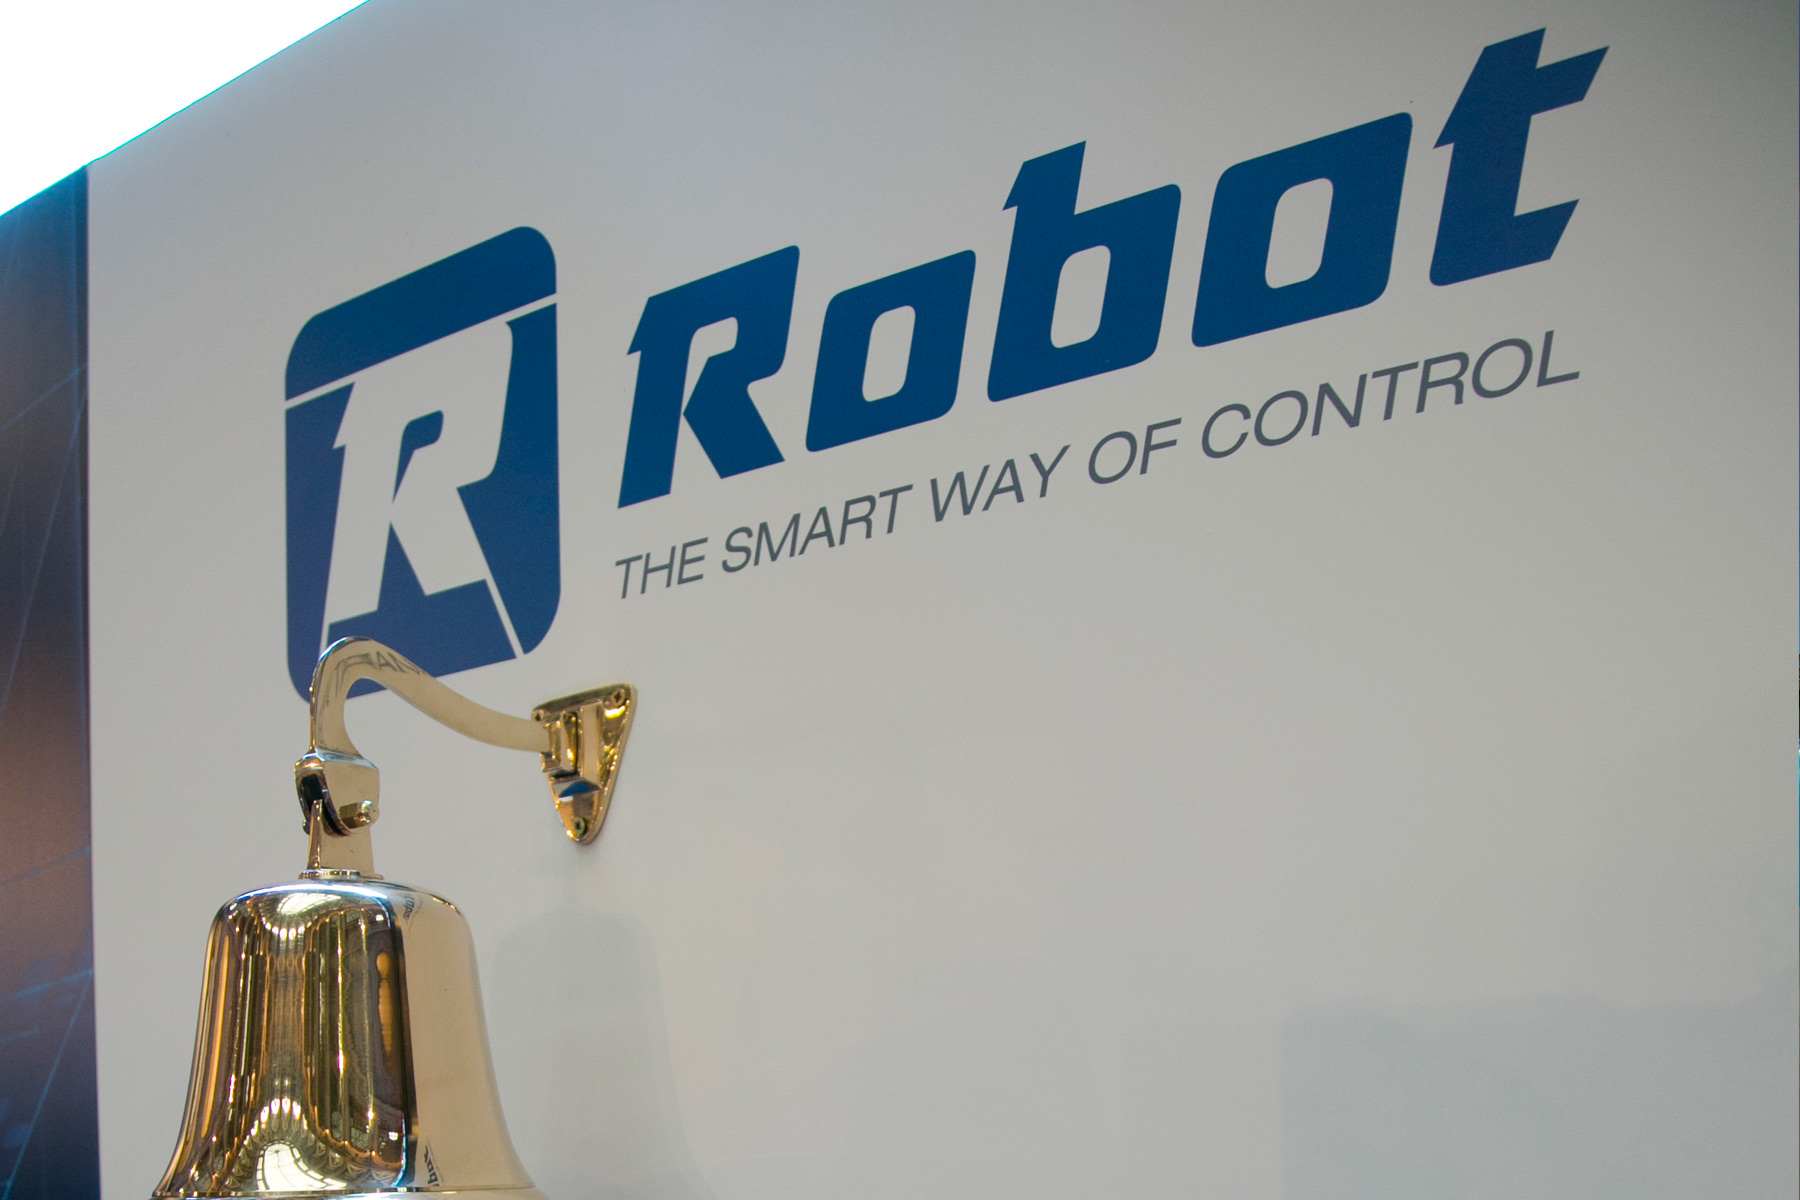 MAB favorable report to the incorporation of Robot